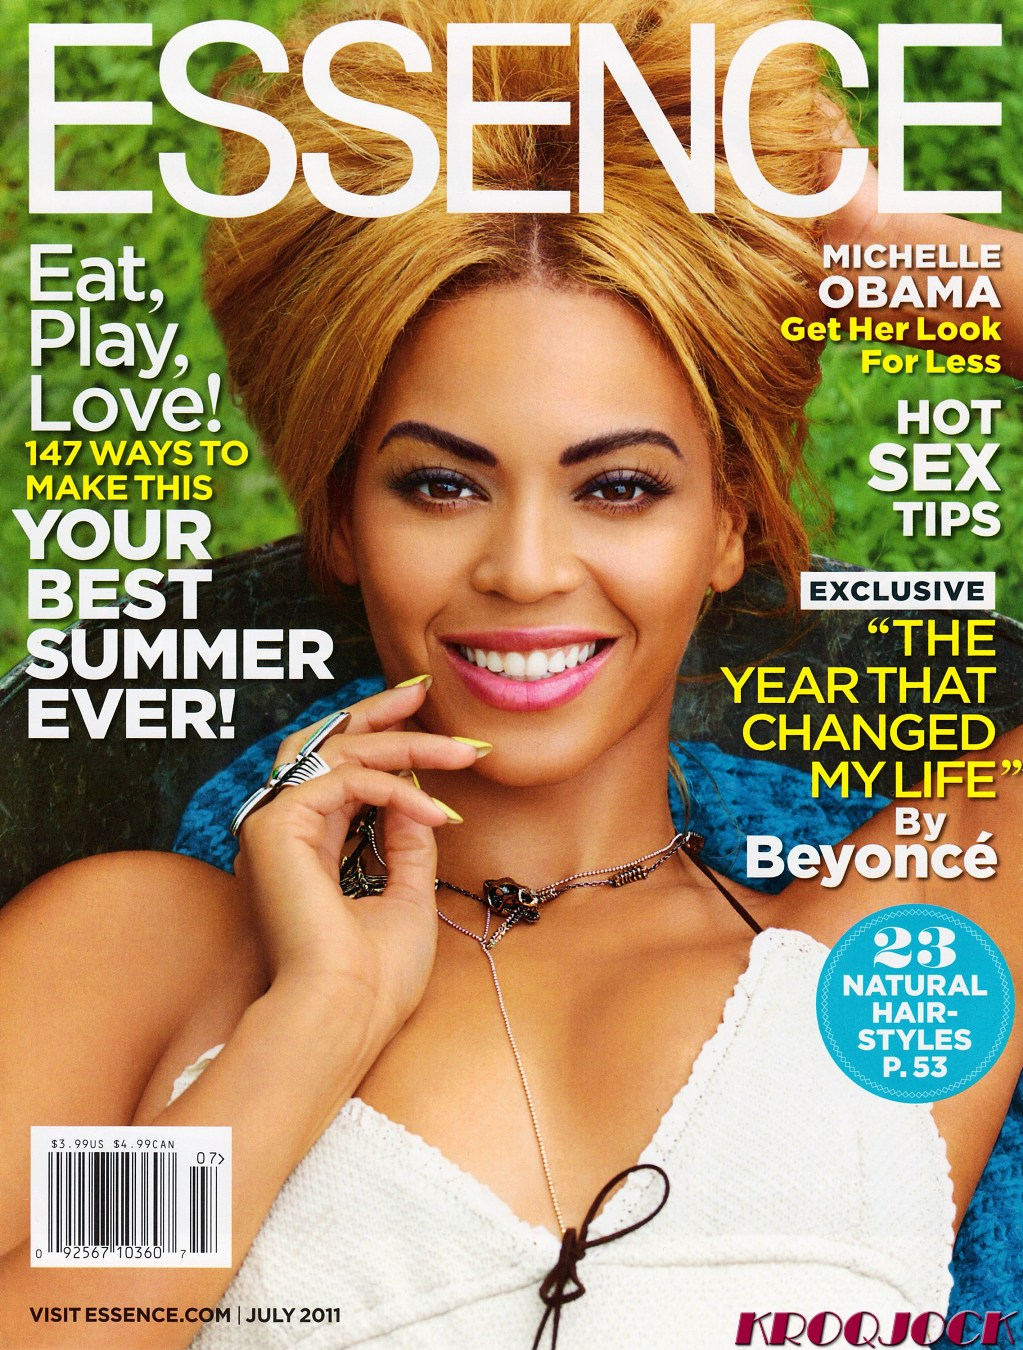 Beyonce Wins an Award from the Association of Black Journalists – Is she Worthy? You decide.